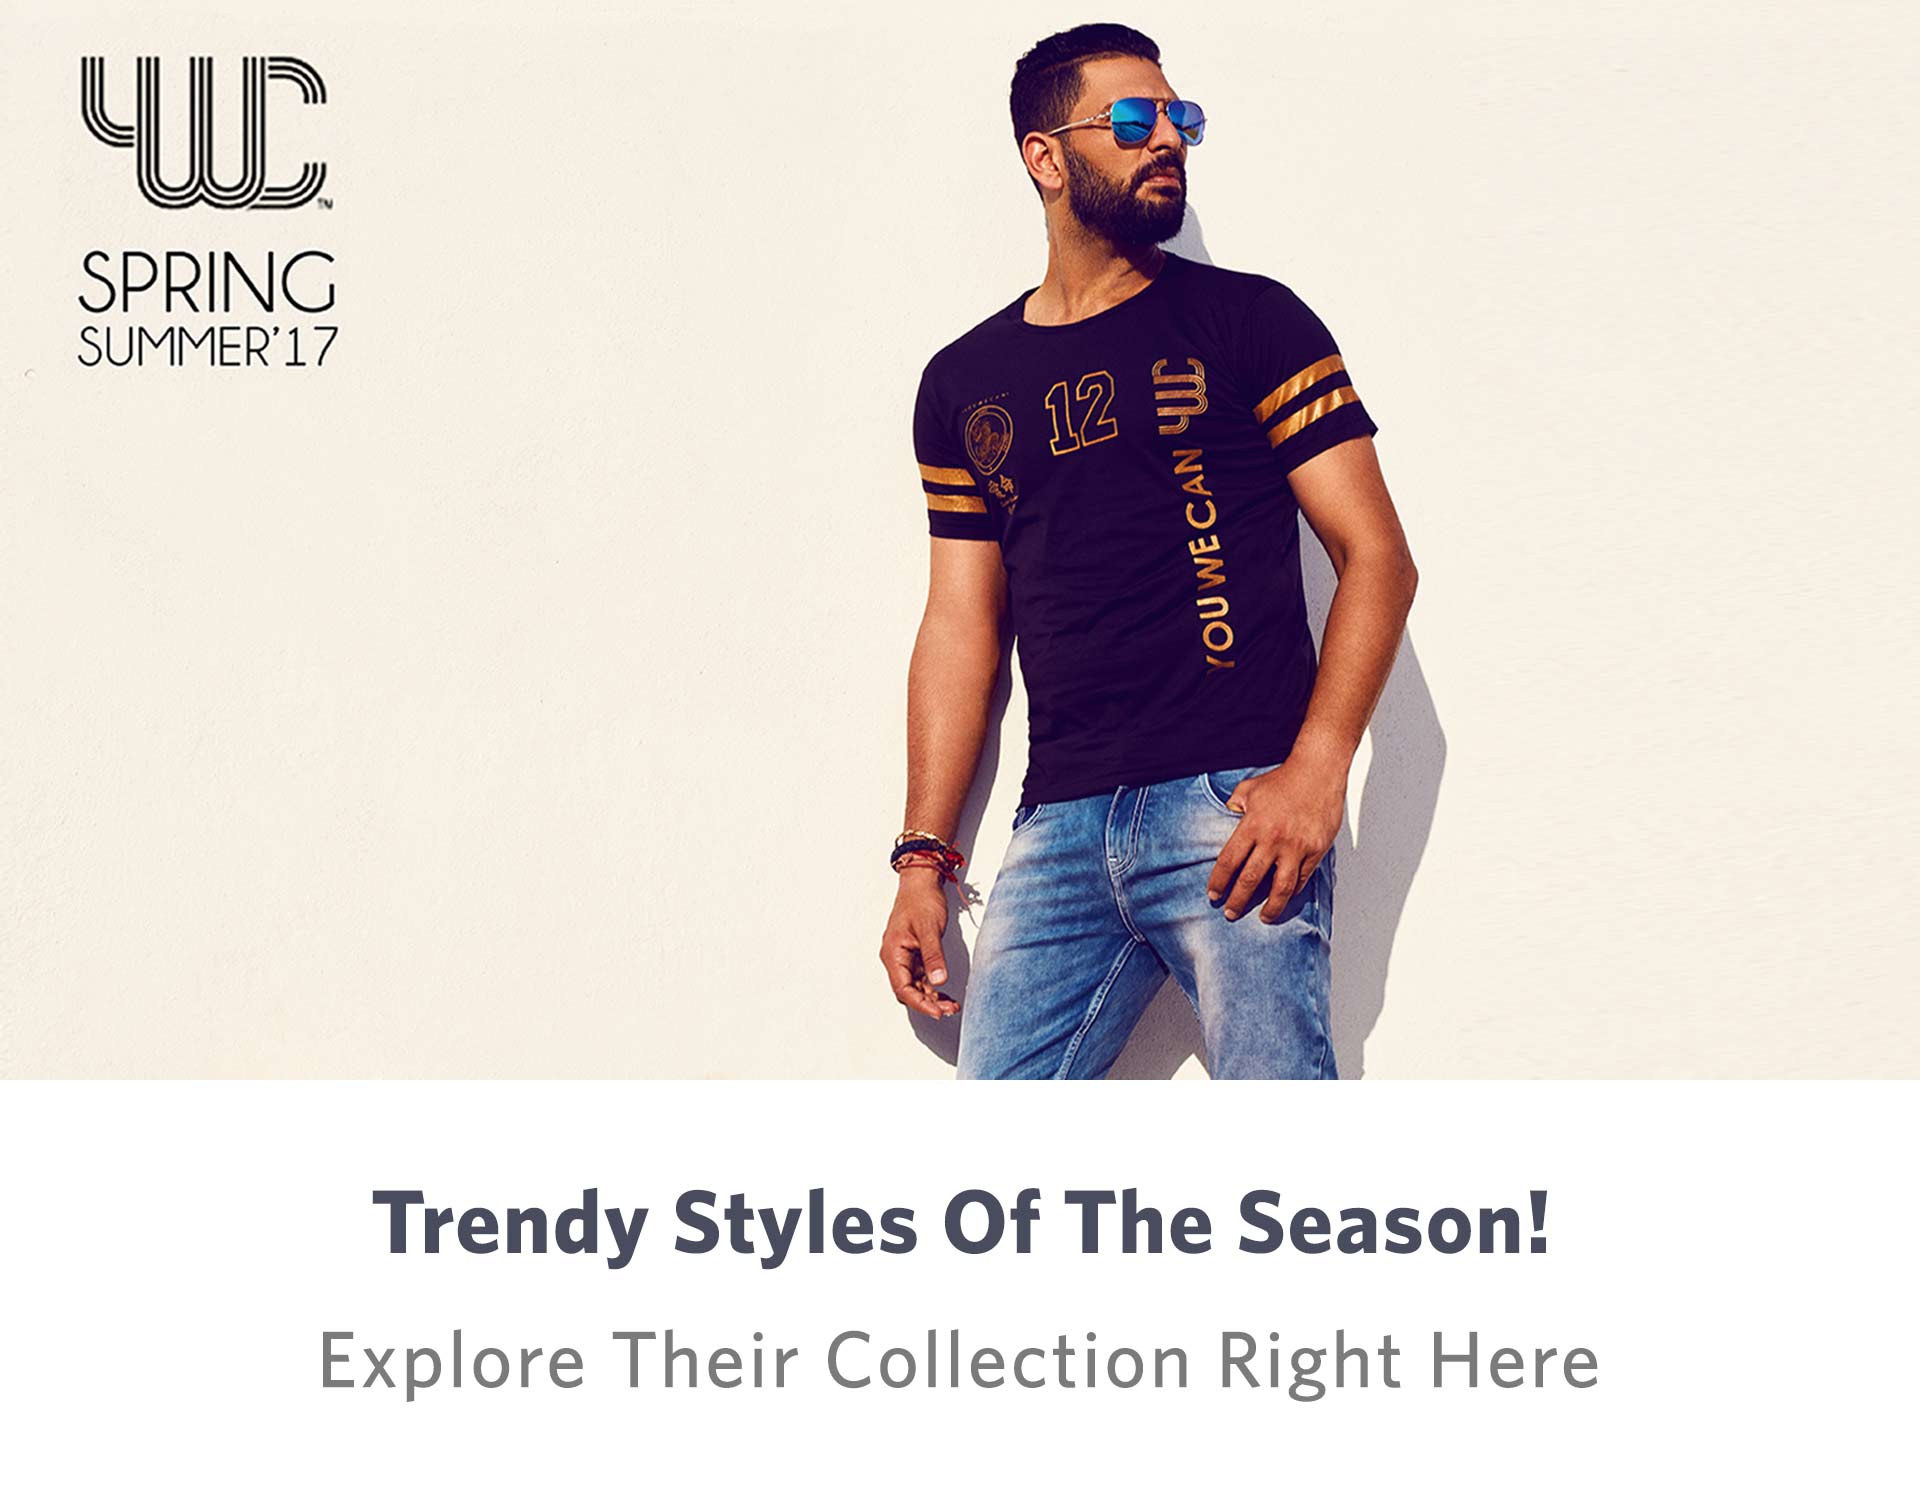 Design your own t shirt india cash on delivery - Design Your Own T Shirt India Cash On Delivery 41